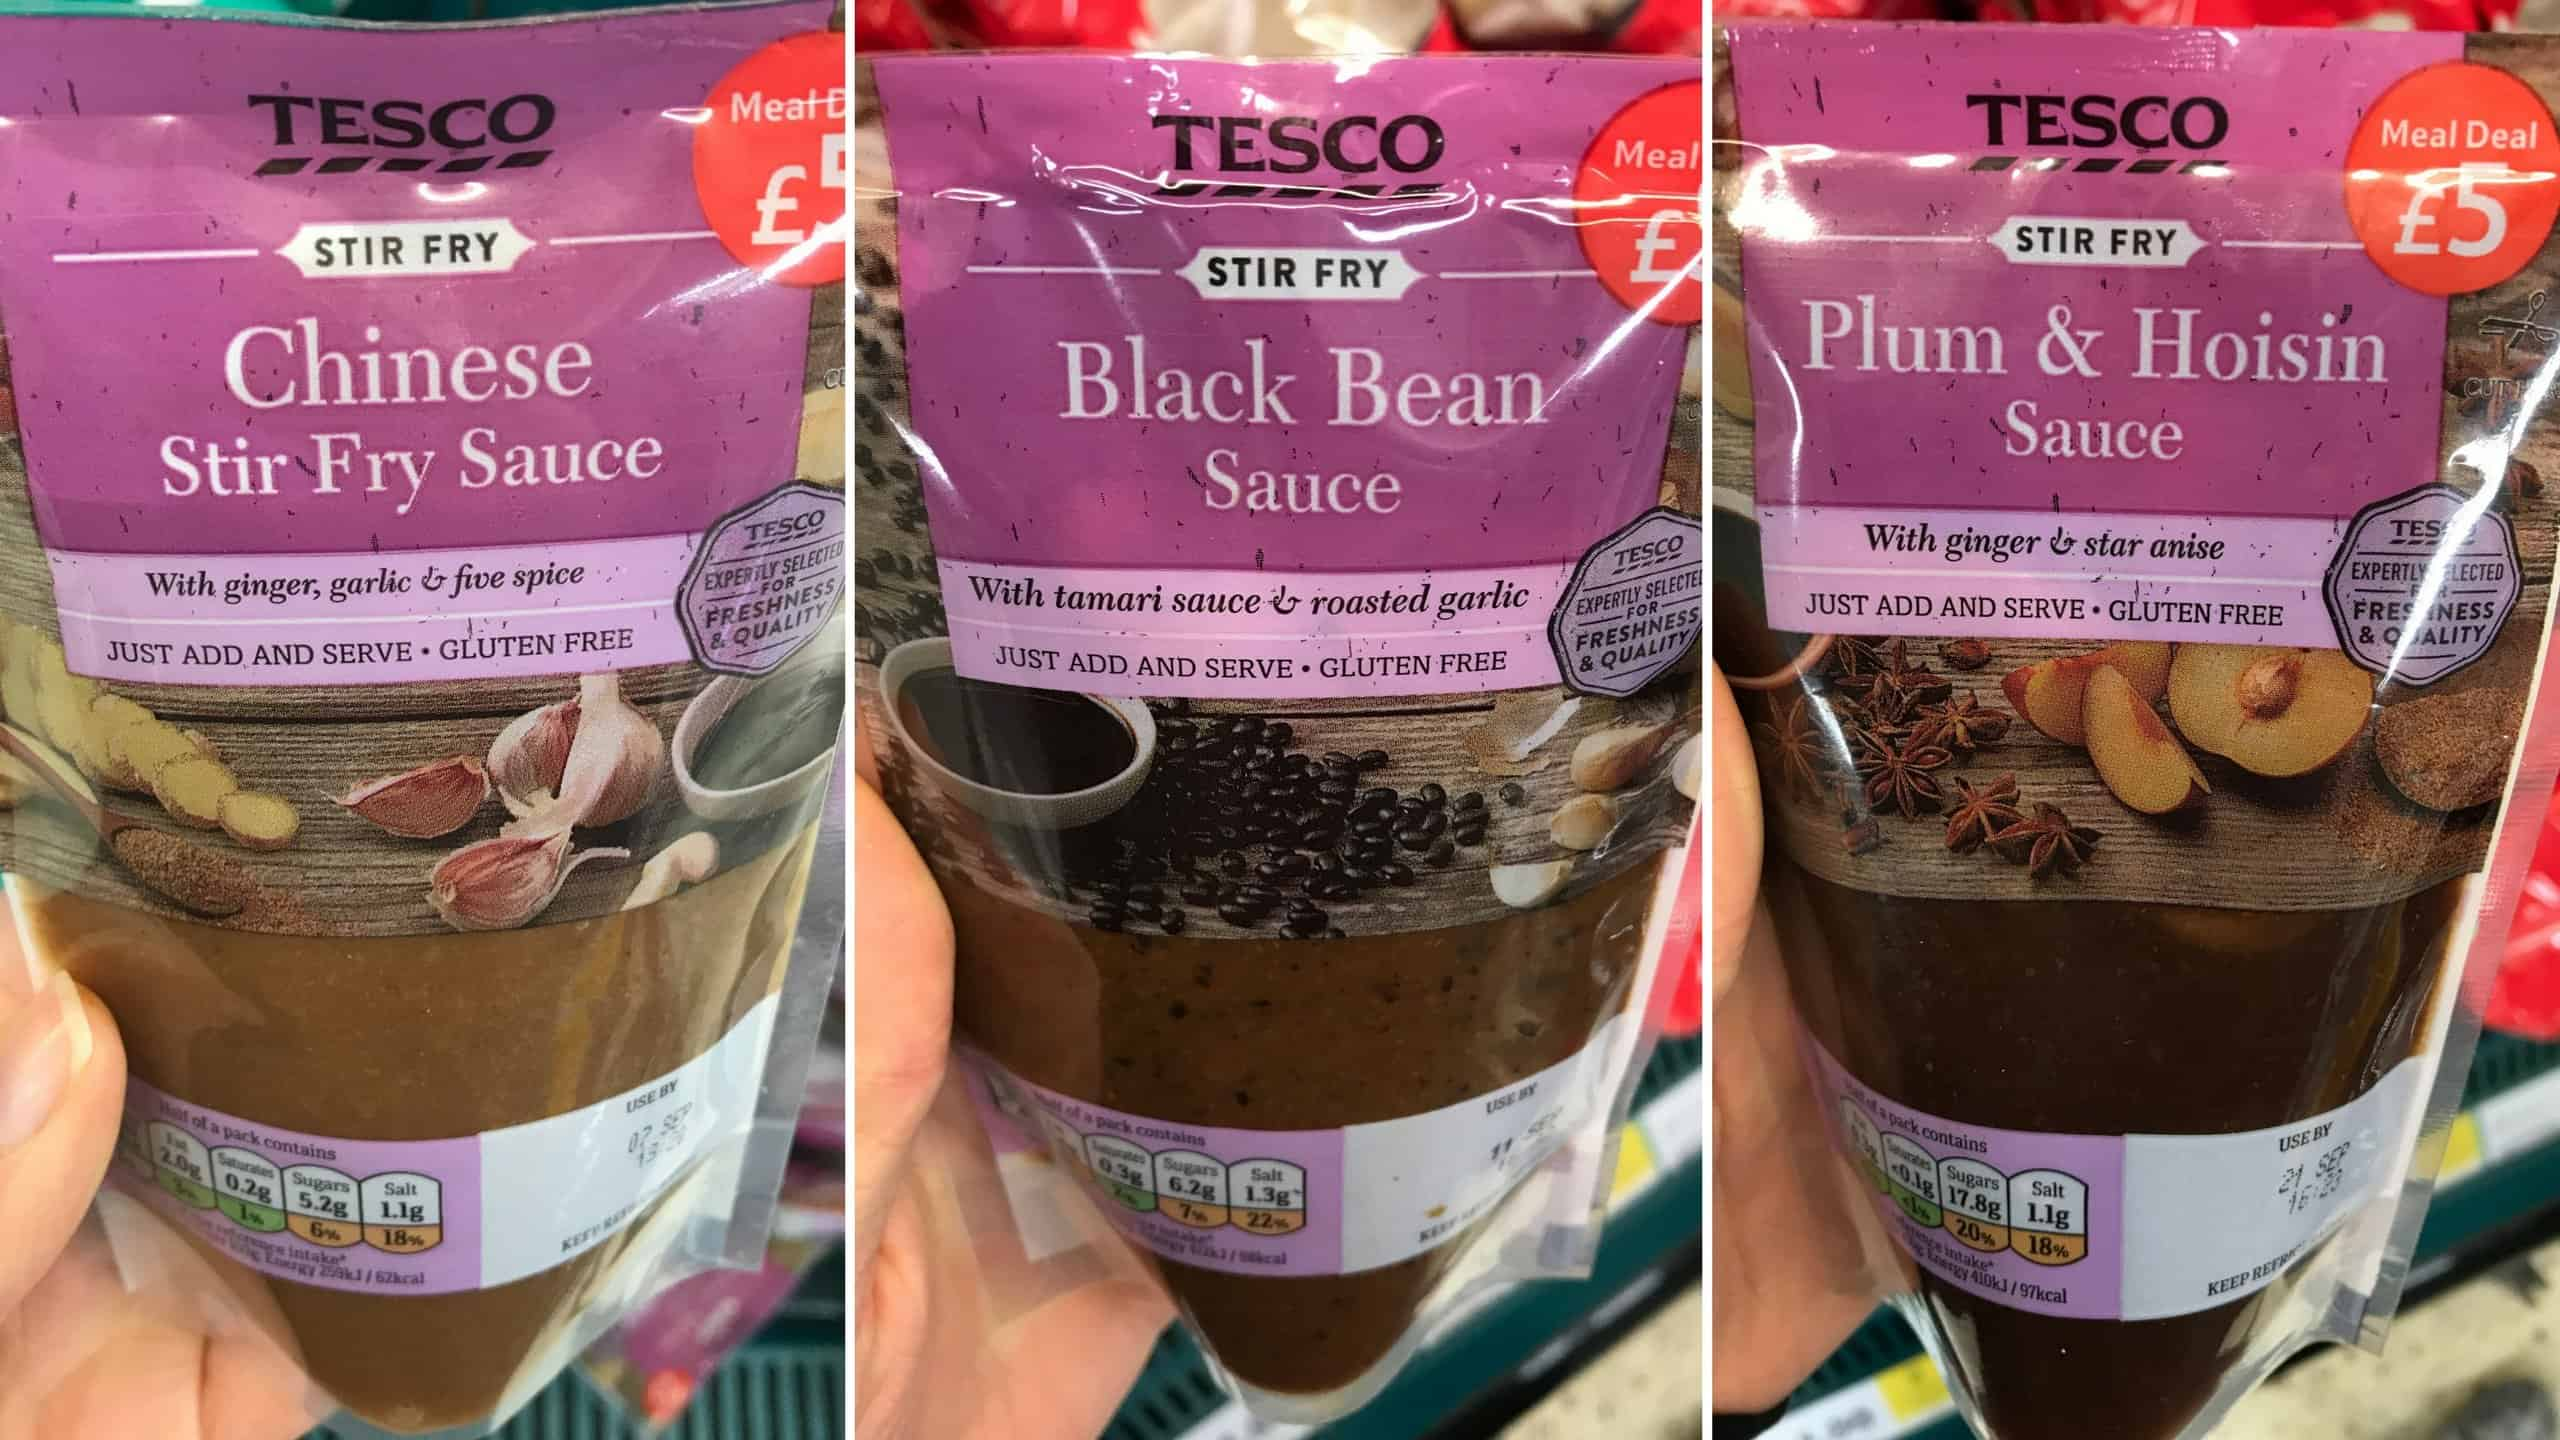 gluten free tesco chinese stir fry sauces